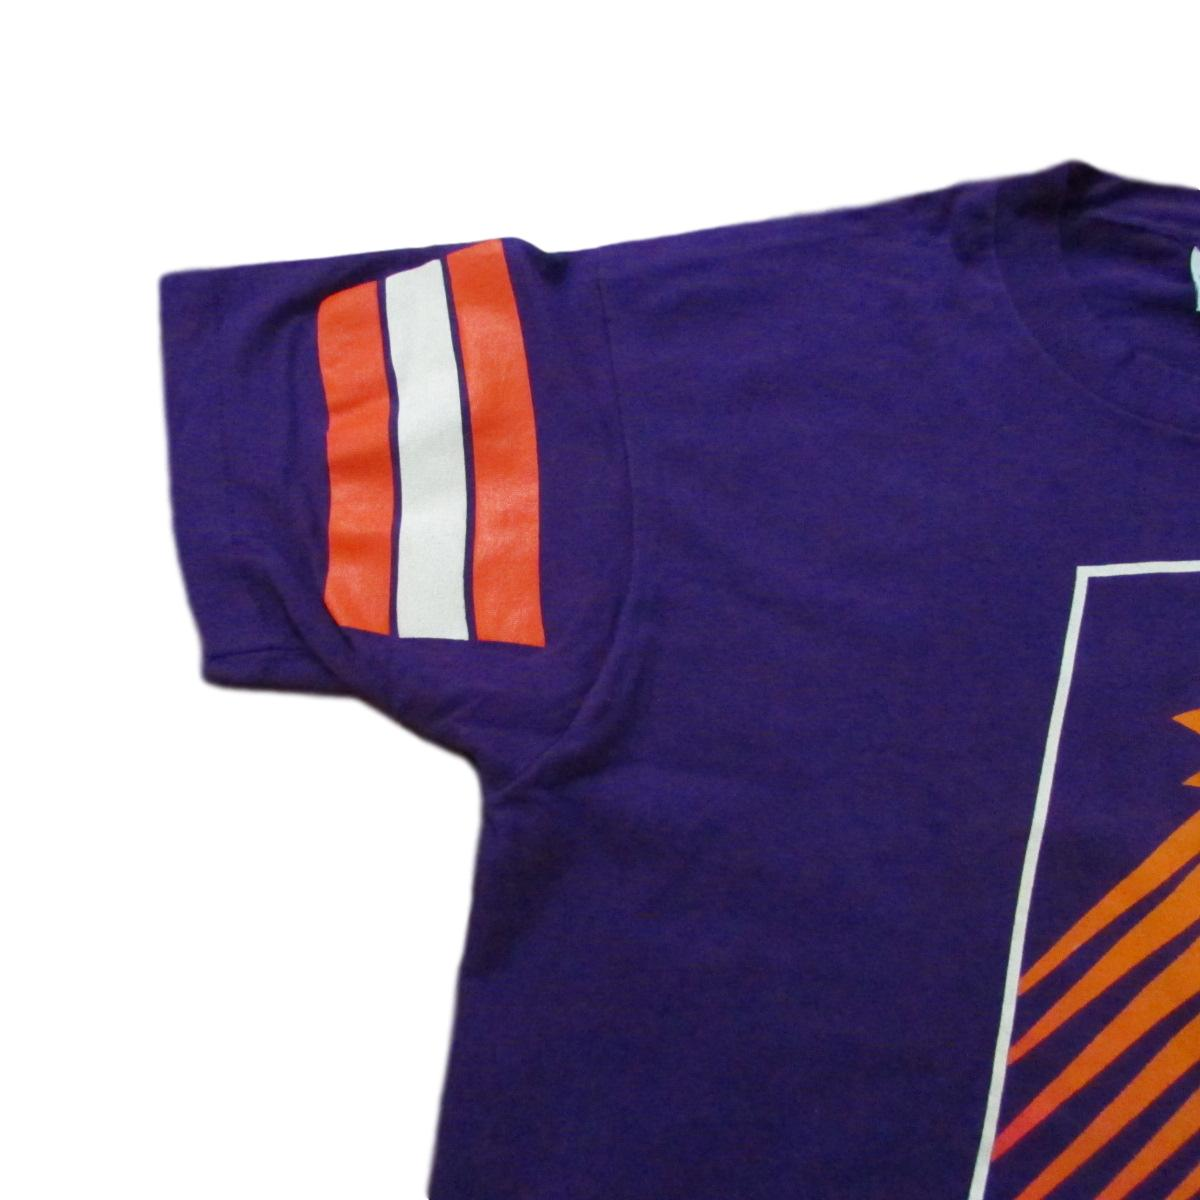 Phoenix Suns All Over Print Western Conference Basketball T-Shirt Salem Sportswear Sz L